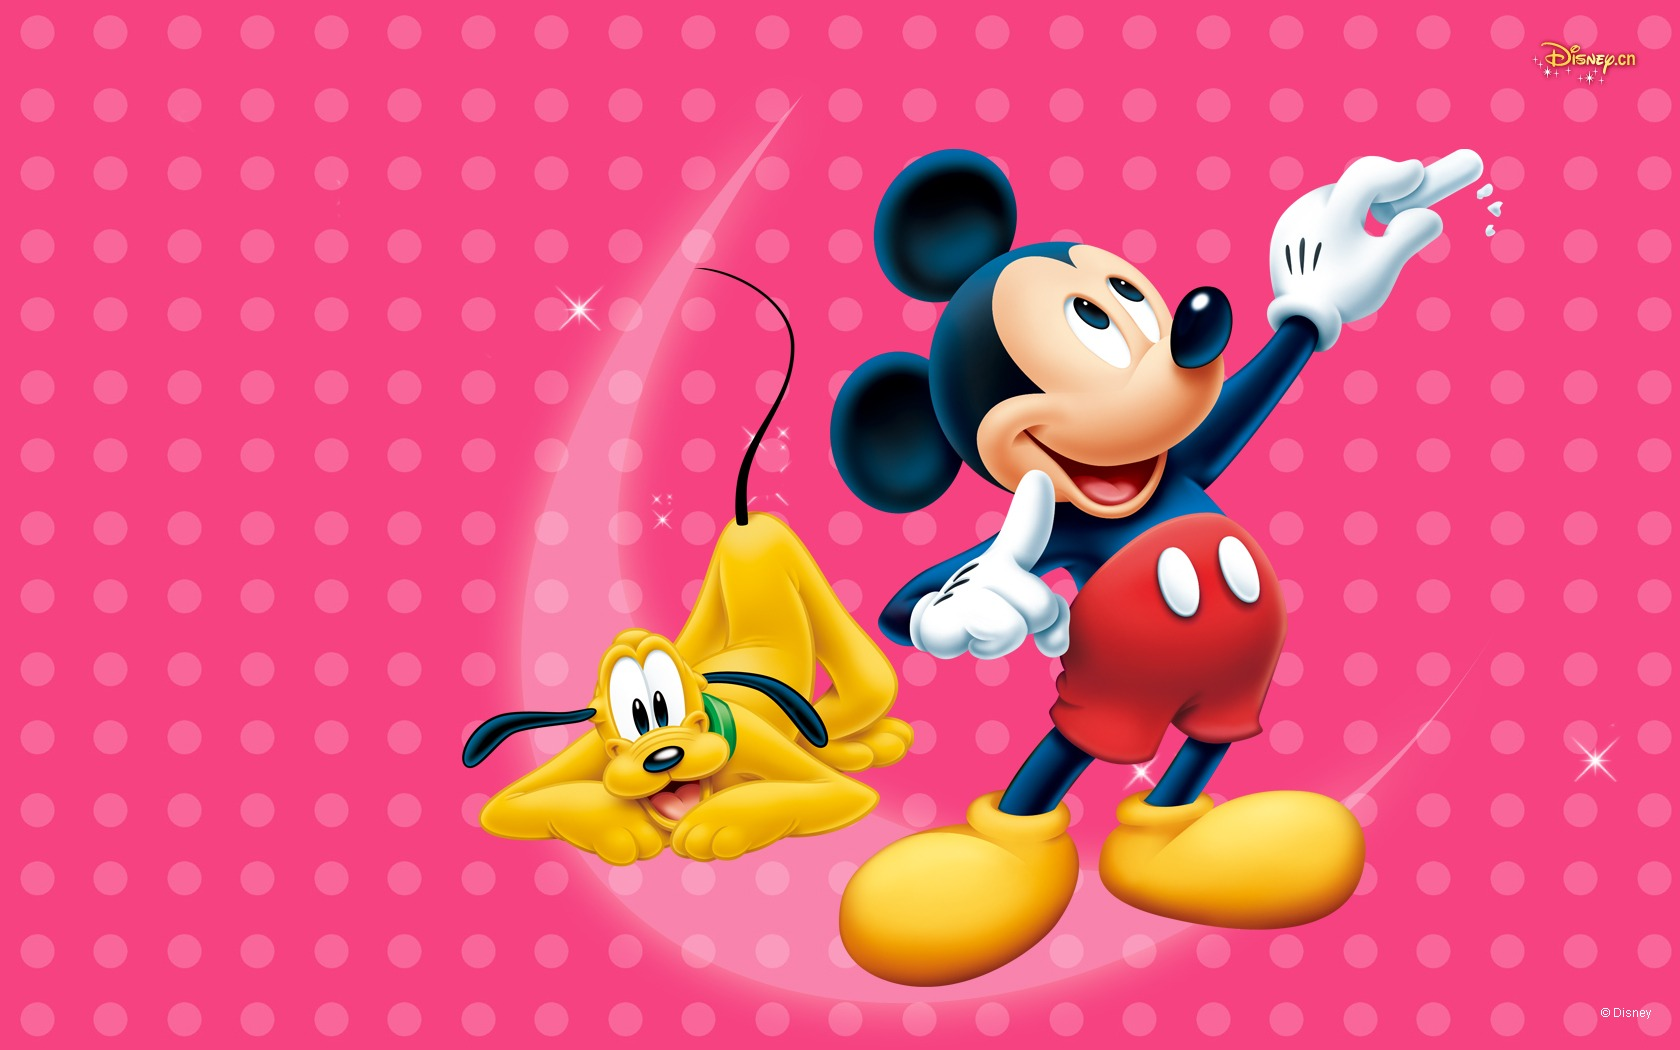 mickey mouse wallpapers for desktop background bergerak iphone 5